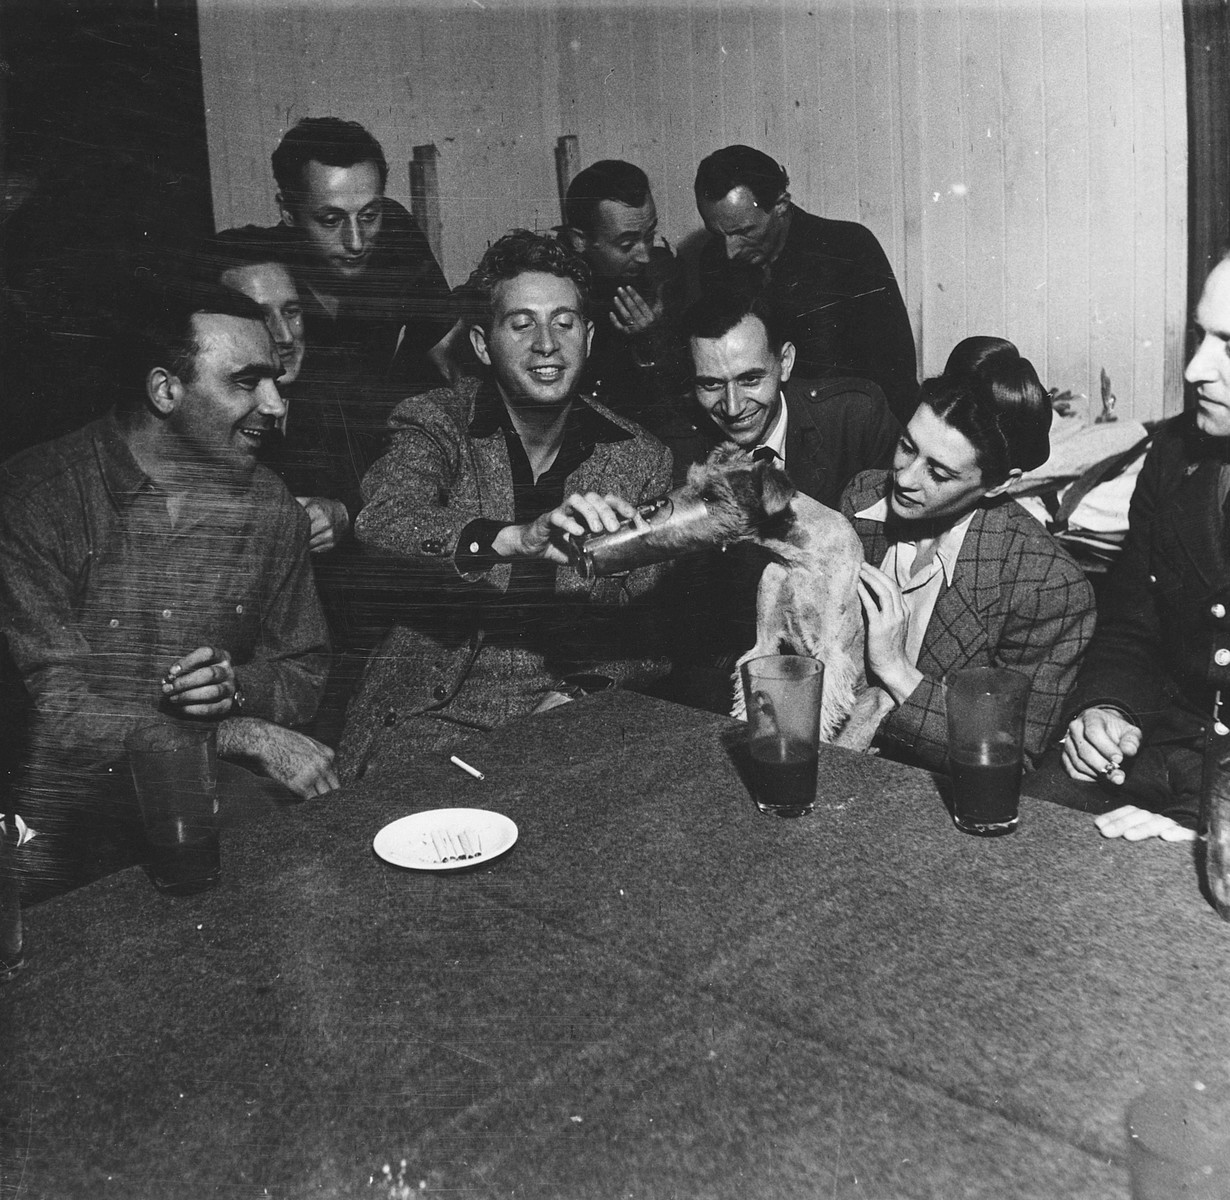 A group of French performers feeds beer to a dog while on tour in Germany.  Sadie Rigal, who is actually a Jew in hiding, is on the right.  Also pictured is the French singer, Charles Trenet, holding the glass in the middle.  [Maurice Chevalier who also toured with them may also be in the photograph.]